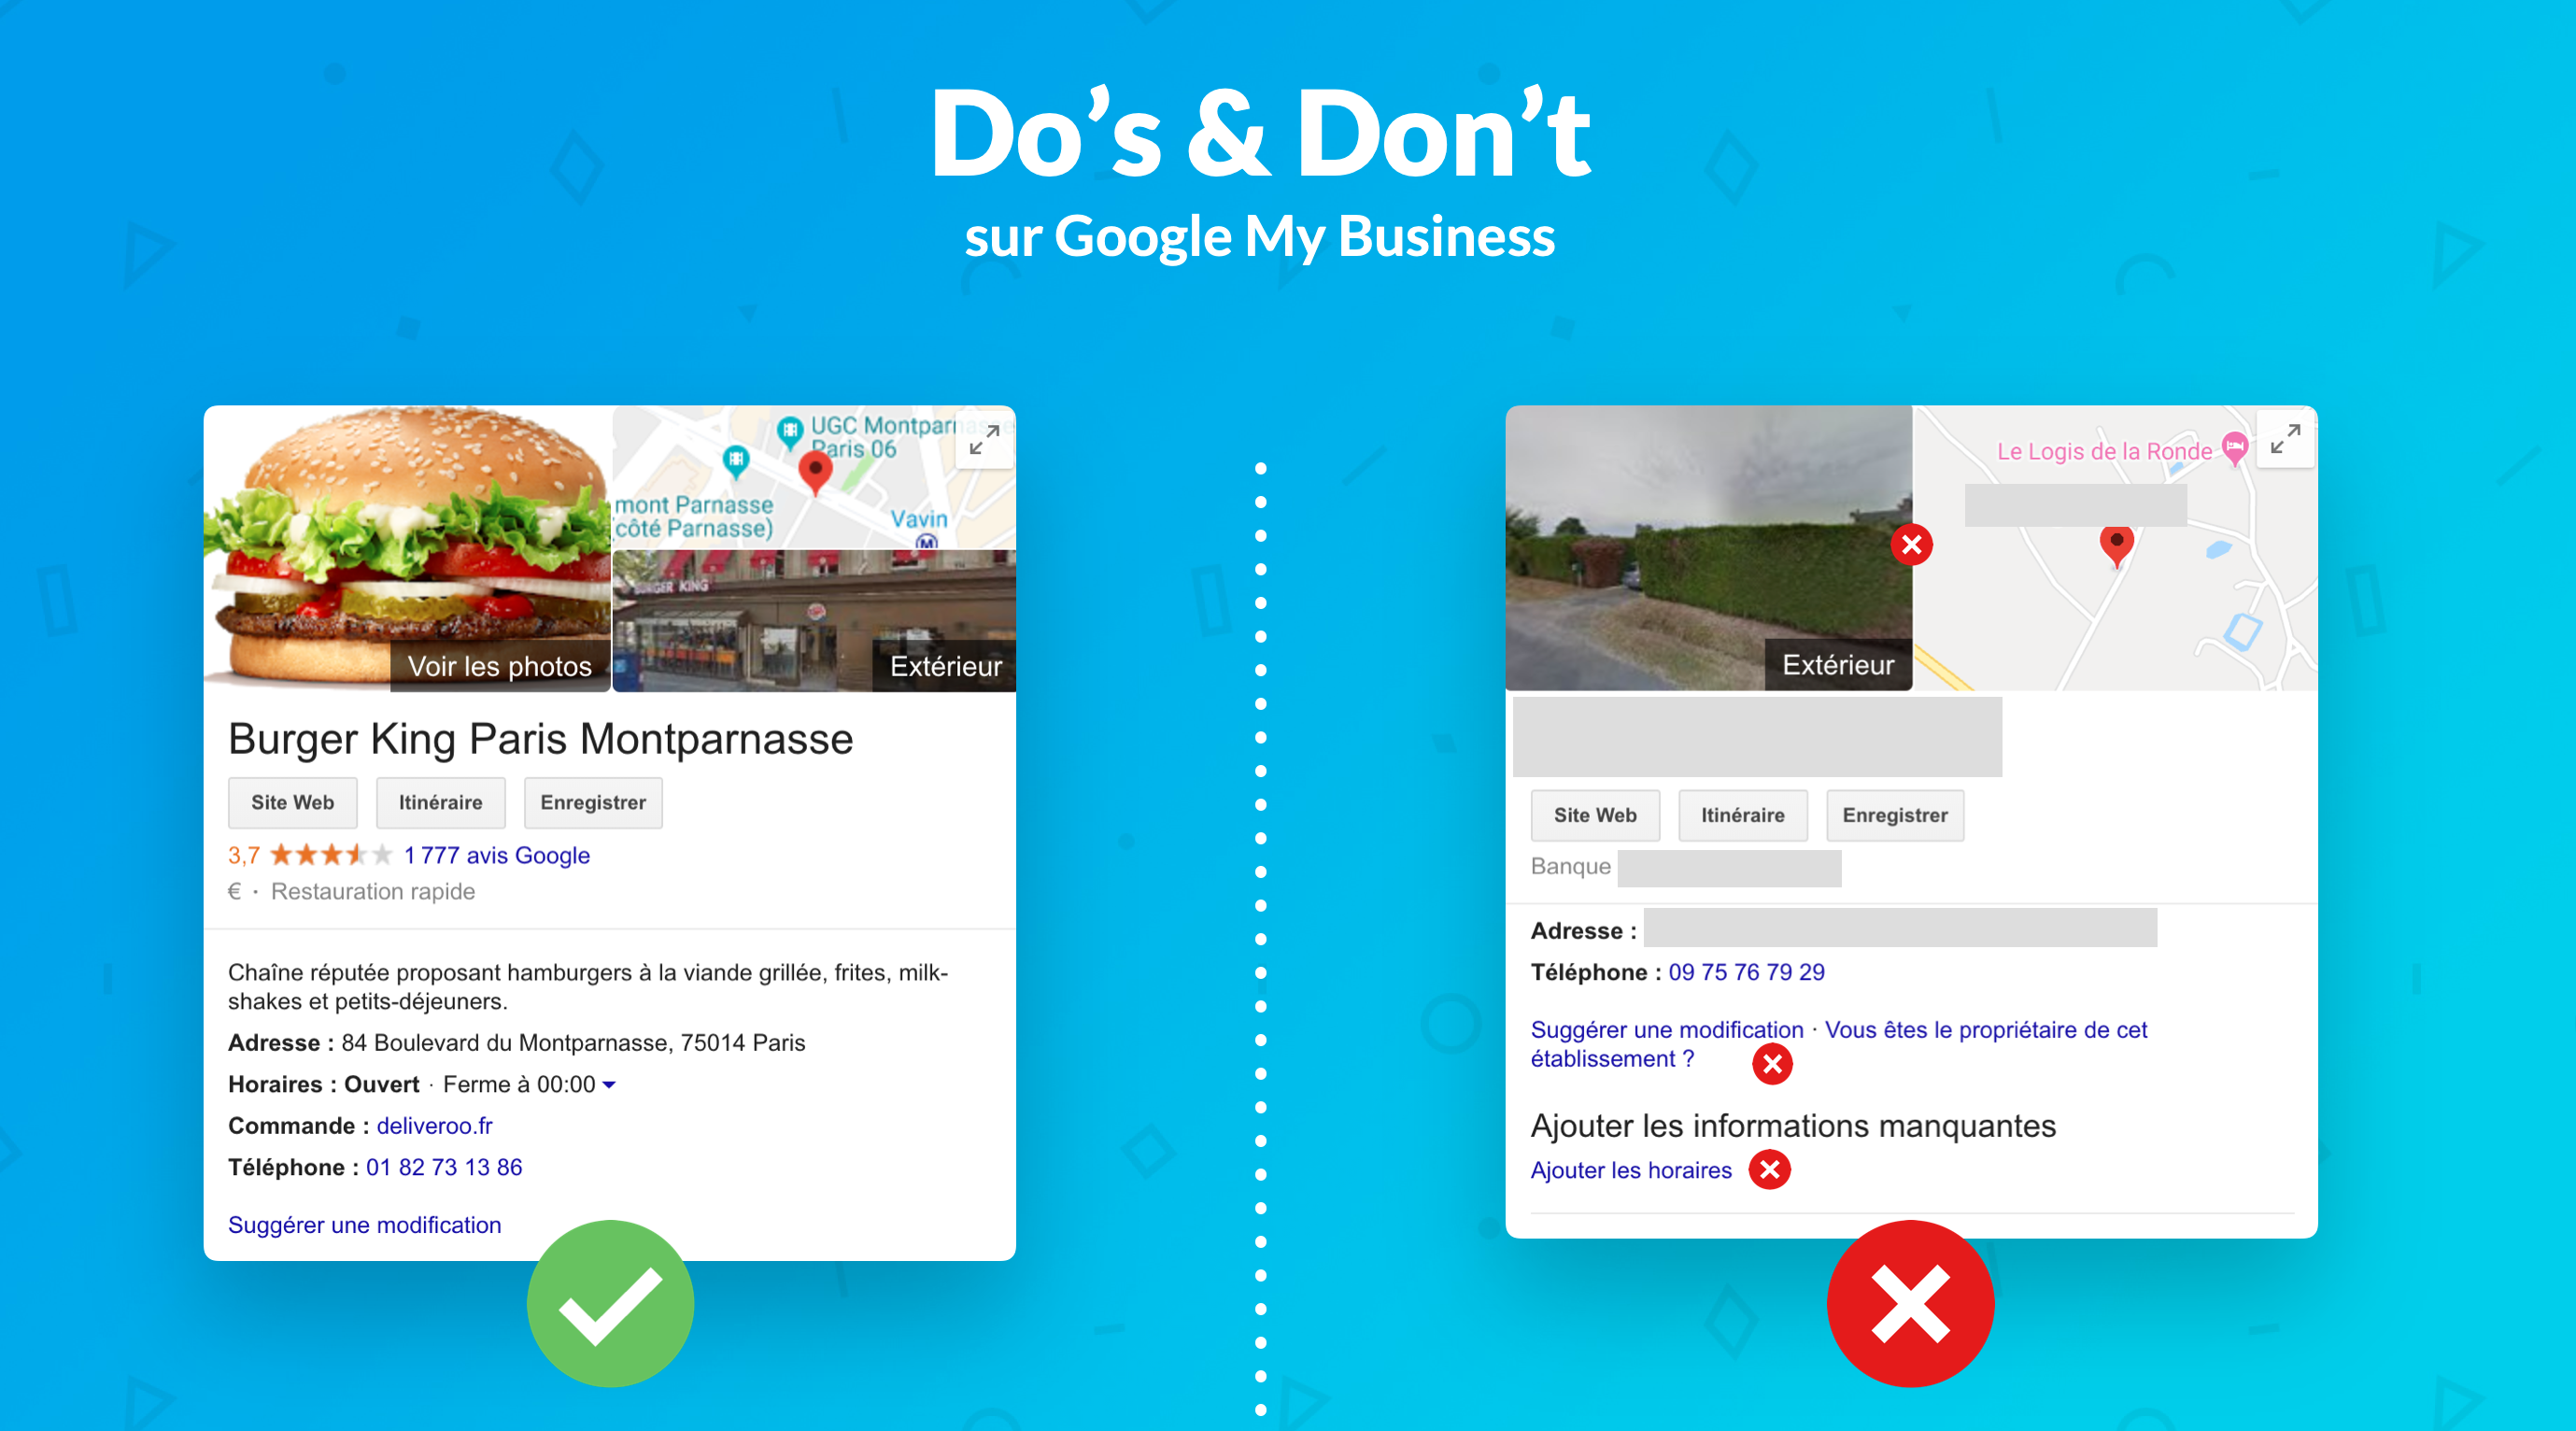 Do's & Don't sur Google My Business